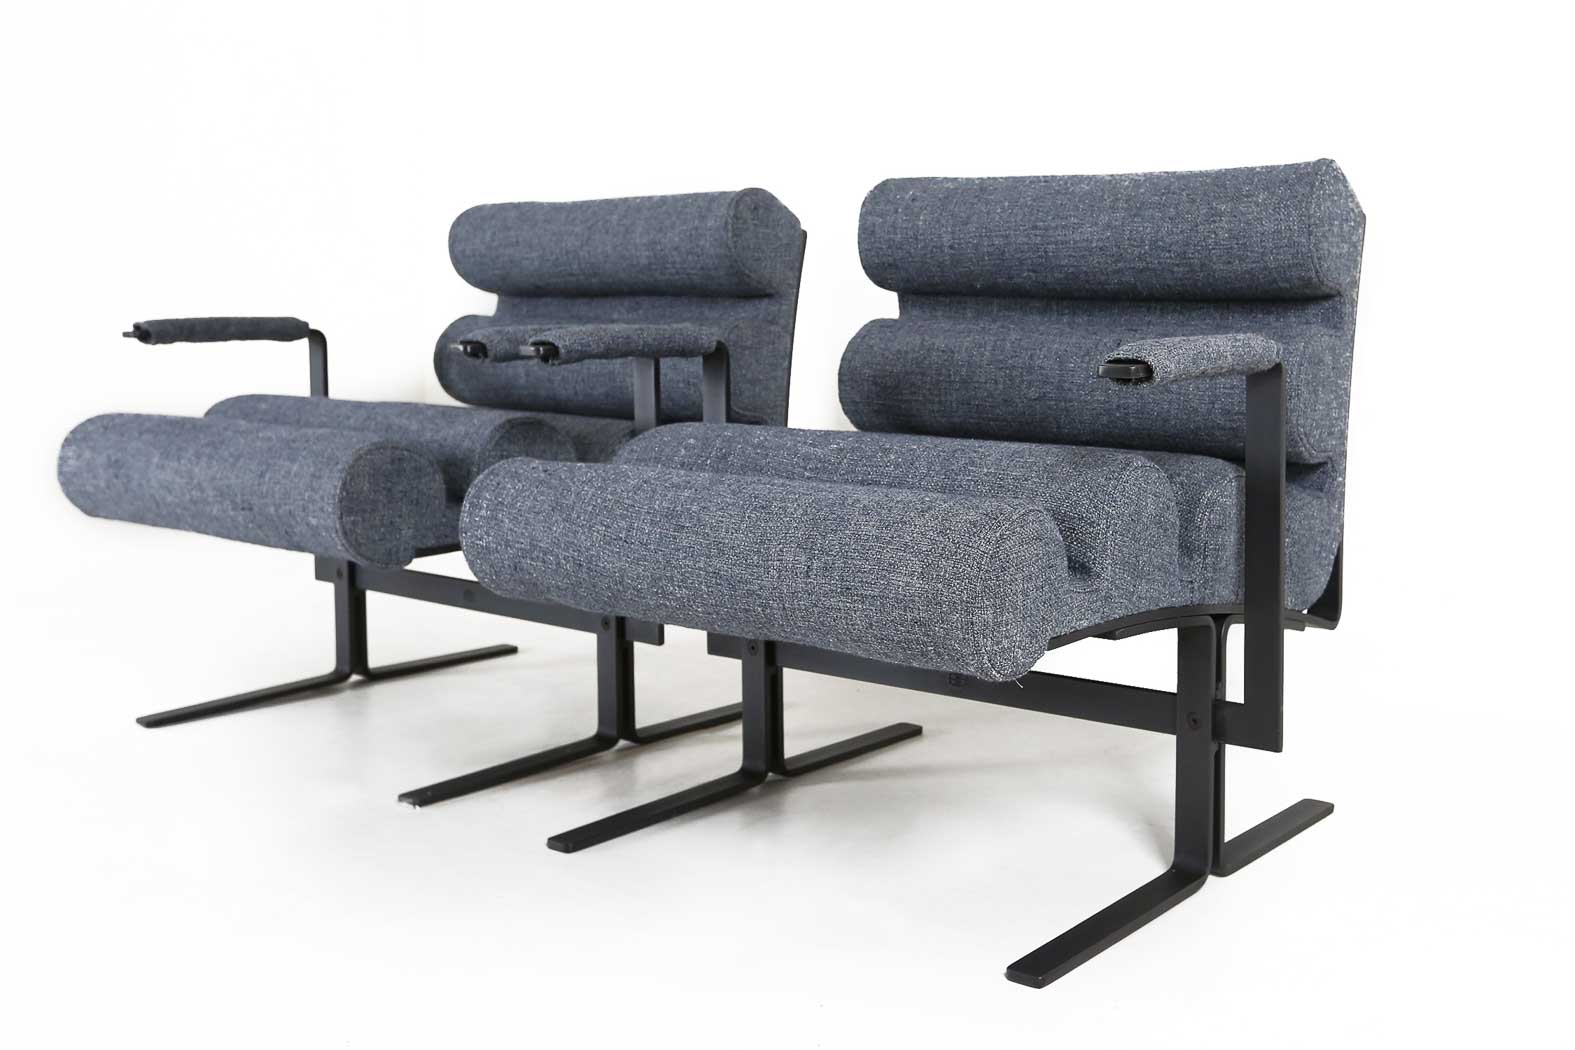 Joe Colombo Roll chairs 1964